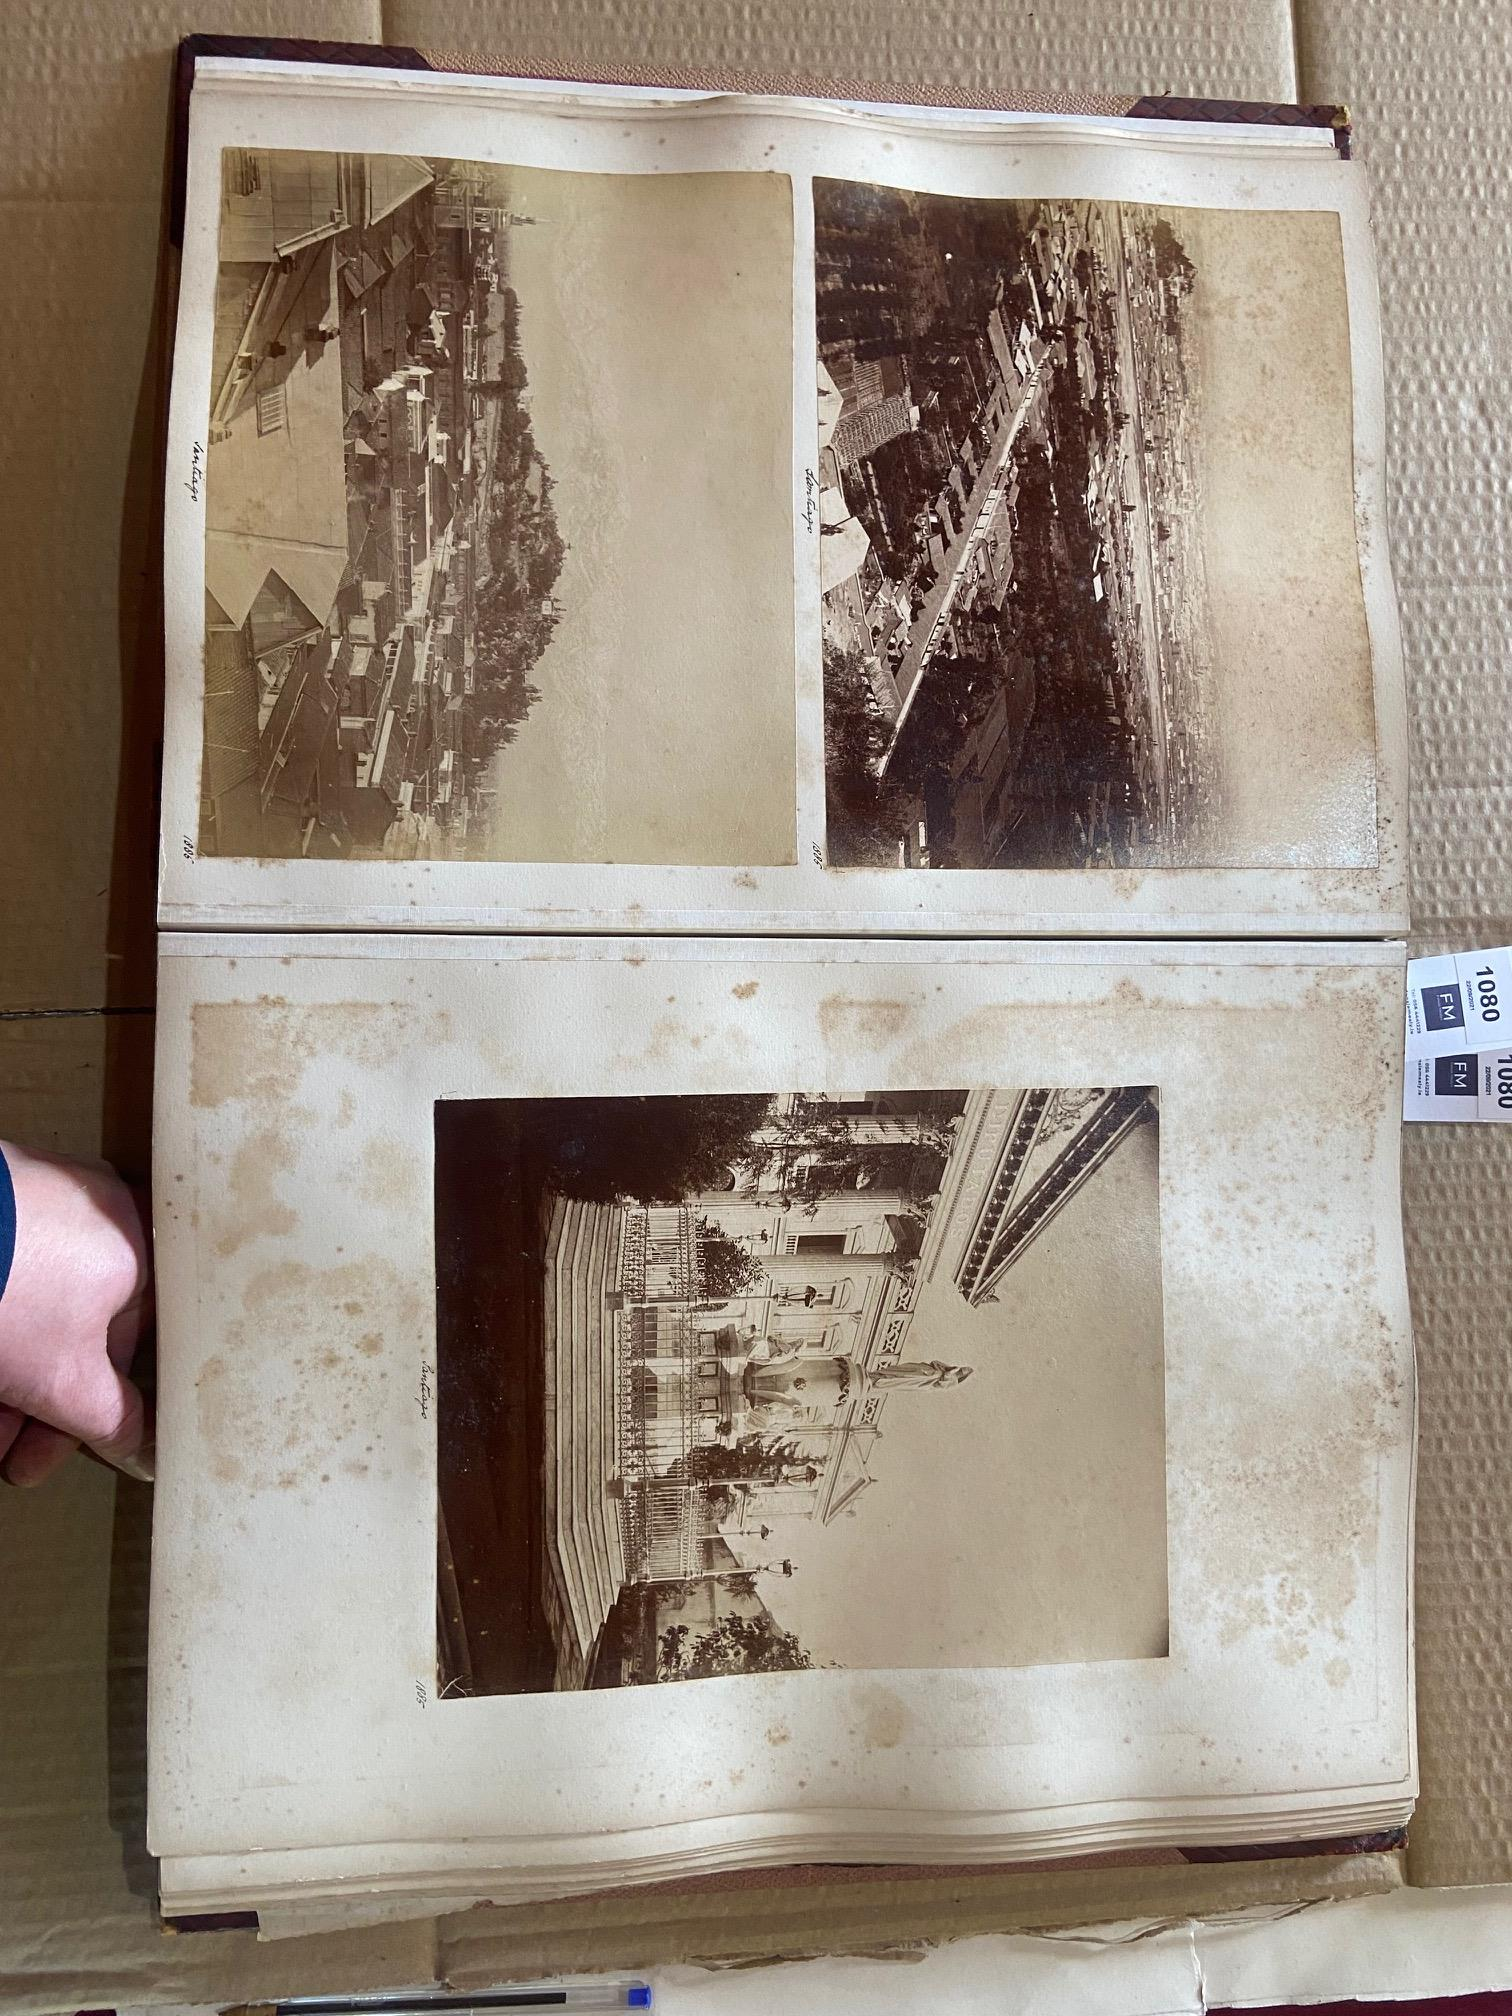 Photographs: Two large folio Albums of Photographs, each c. 1870 - 1890's. One Album contains - Image 21 of 31